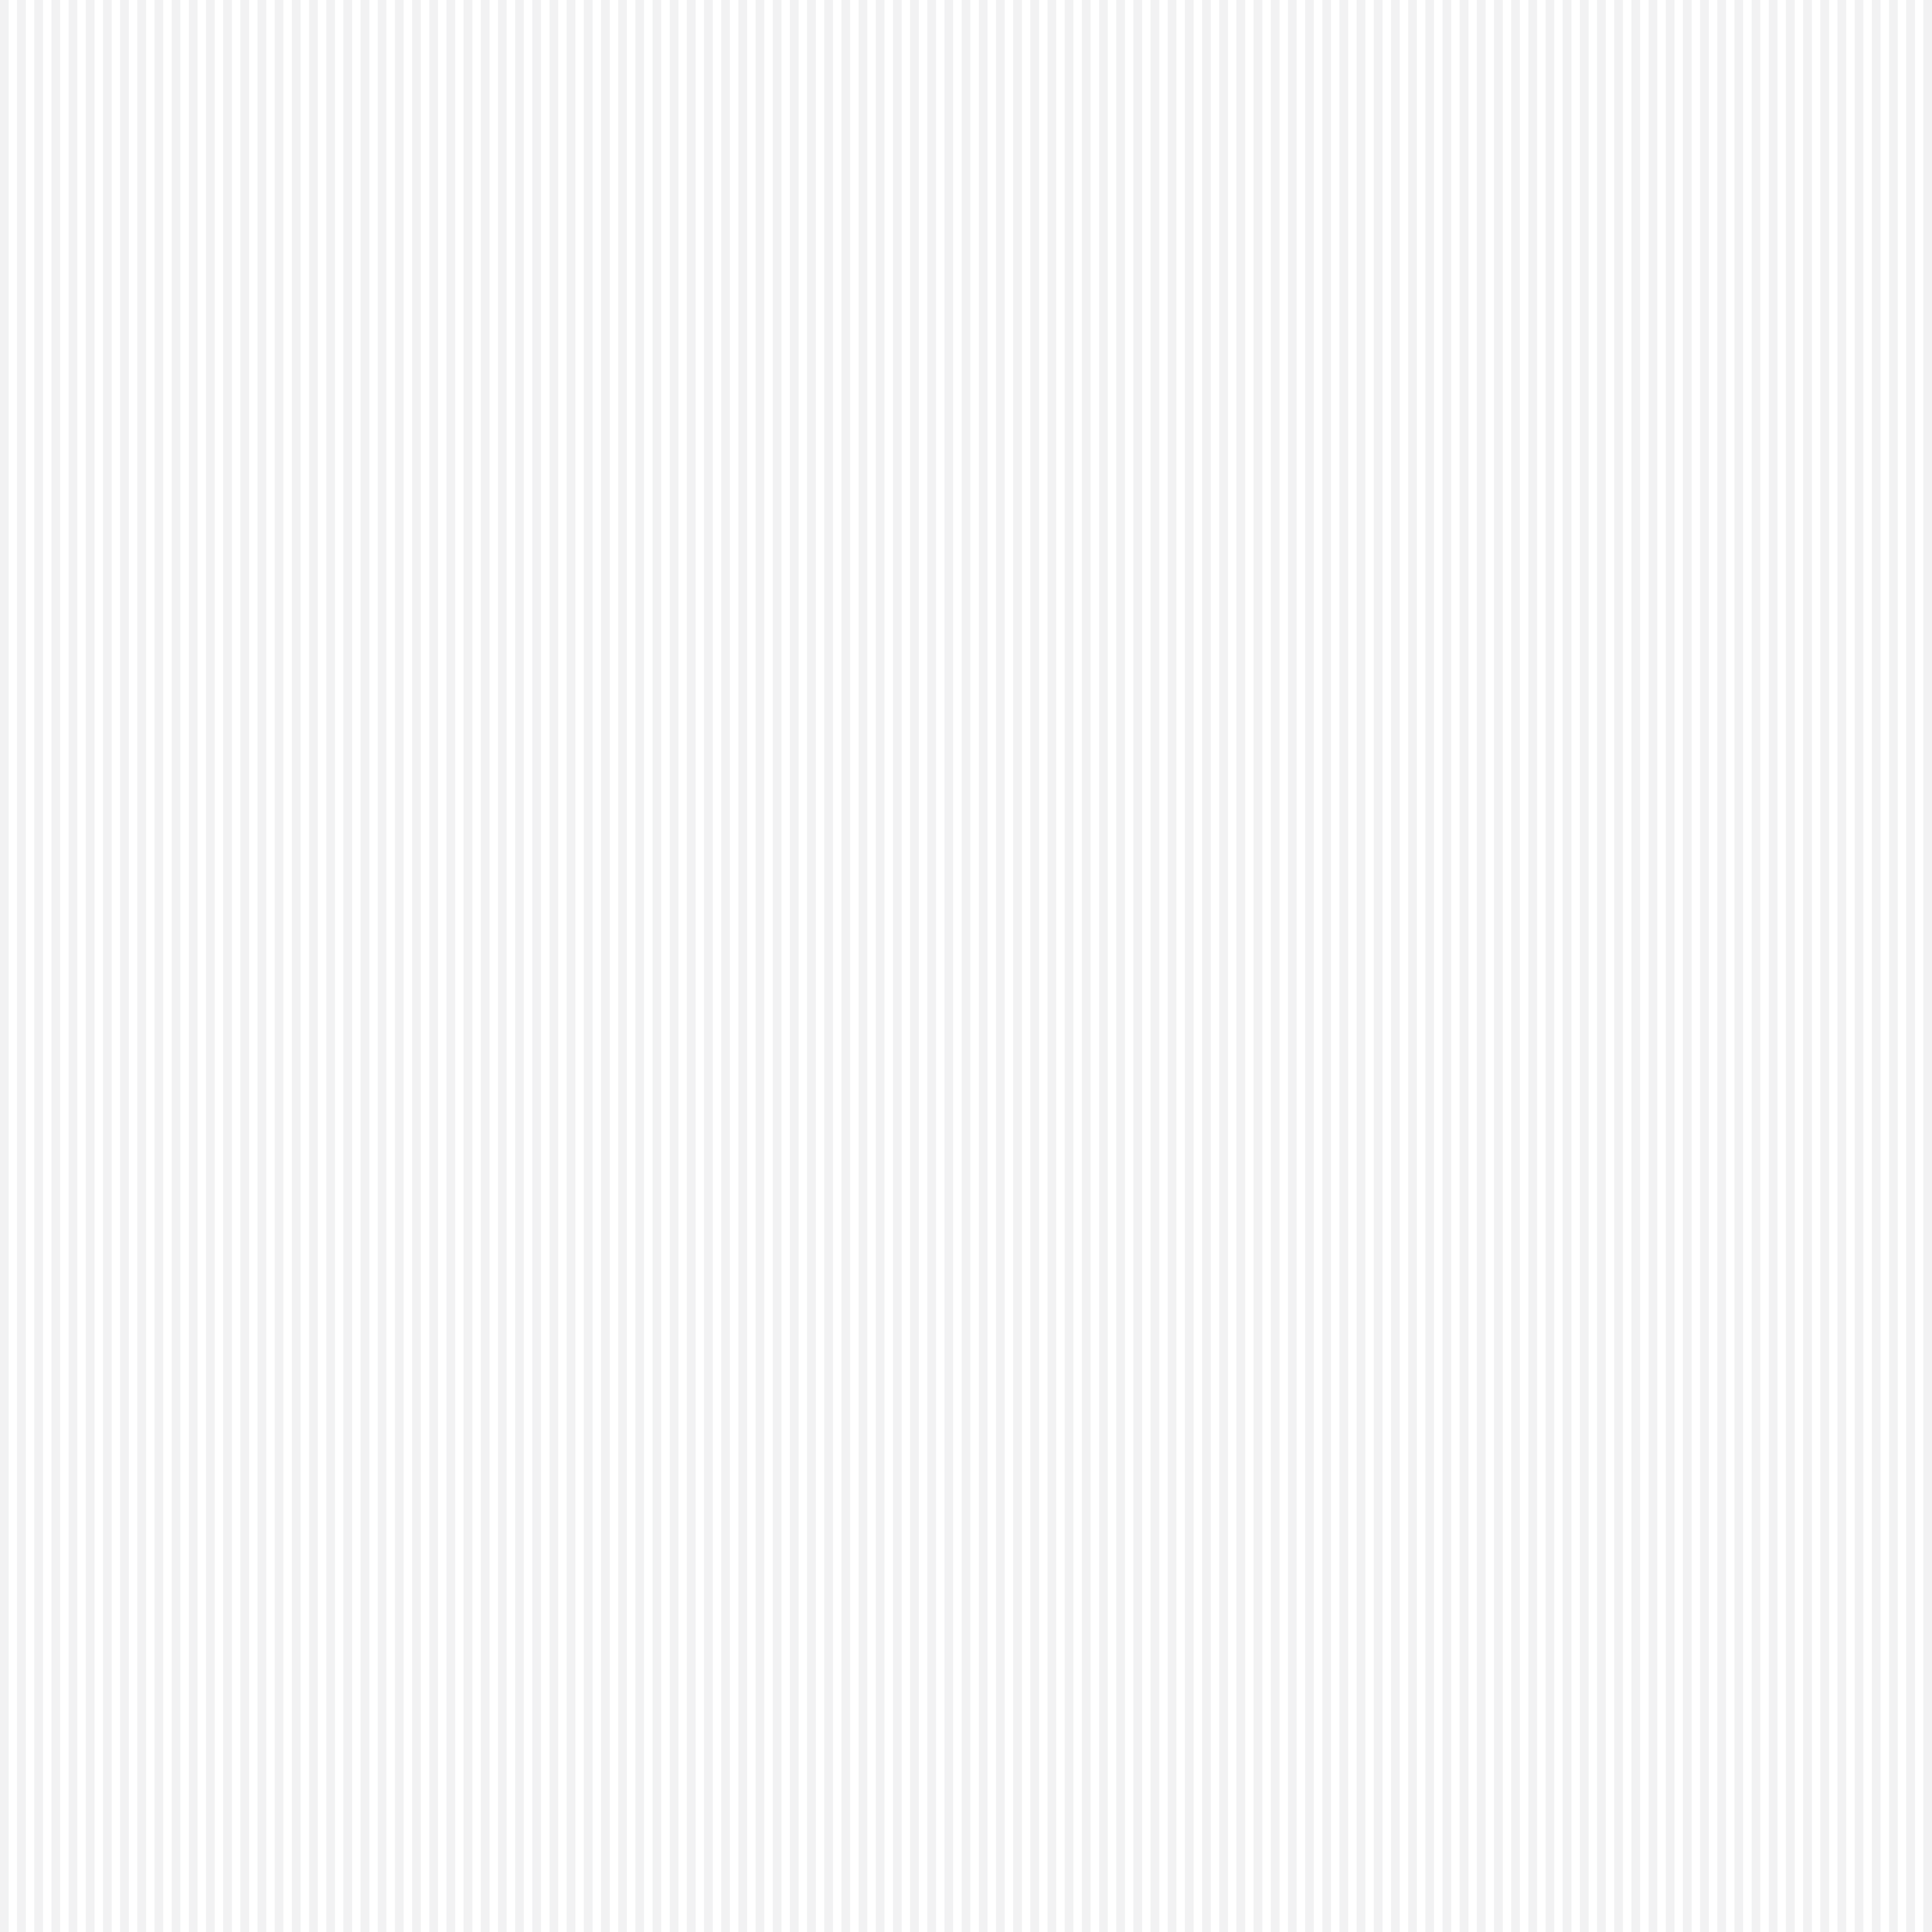 Vertical line clipart png picture royalty free library Vertical Lines Background Effect PNG Clip Art Image ... picture royalty free library